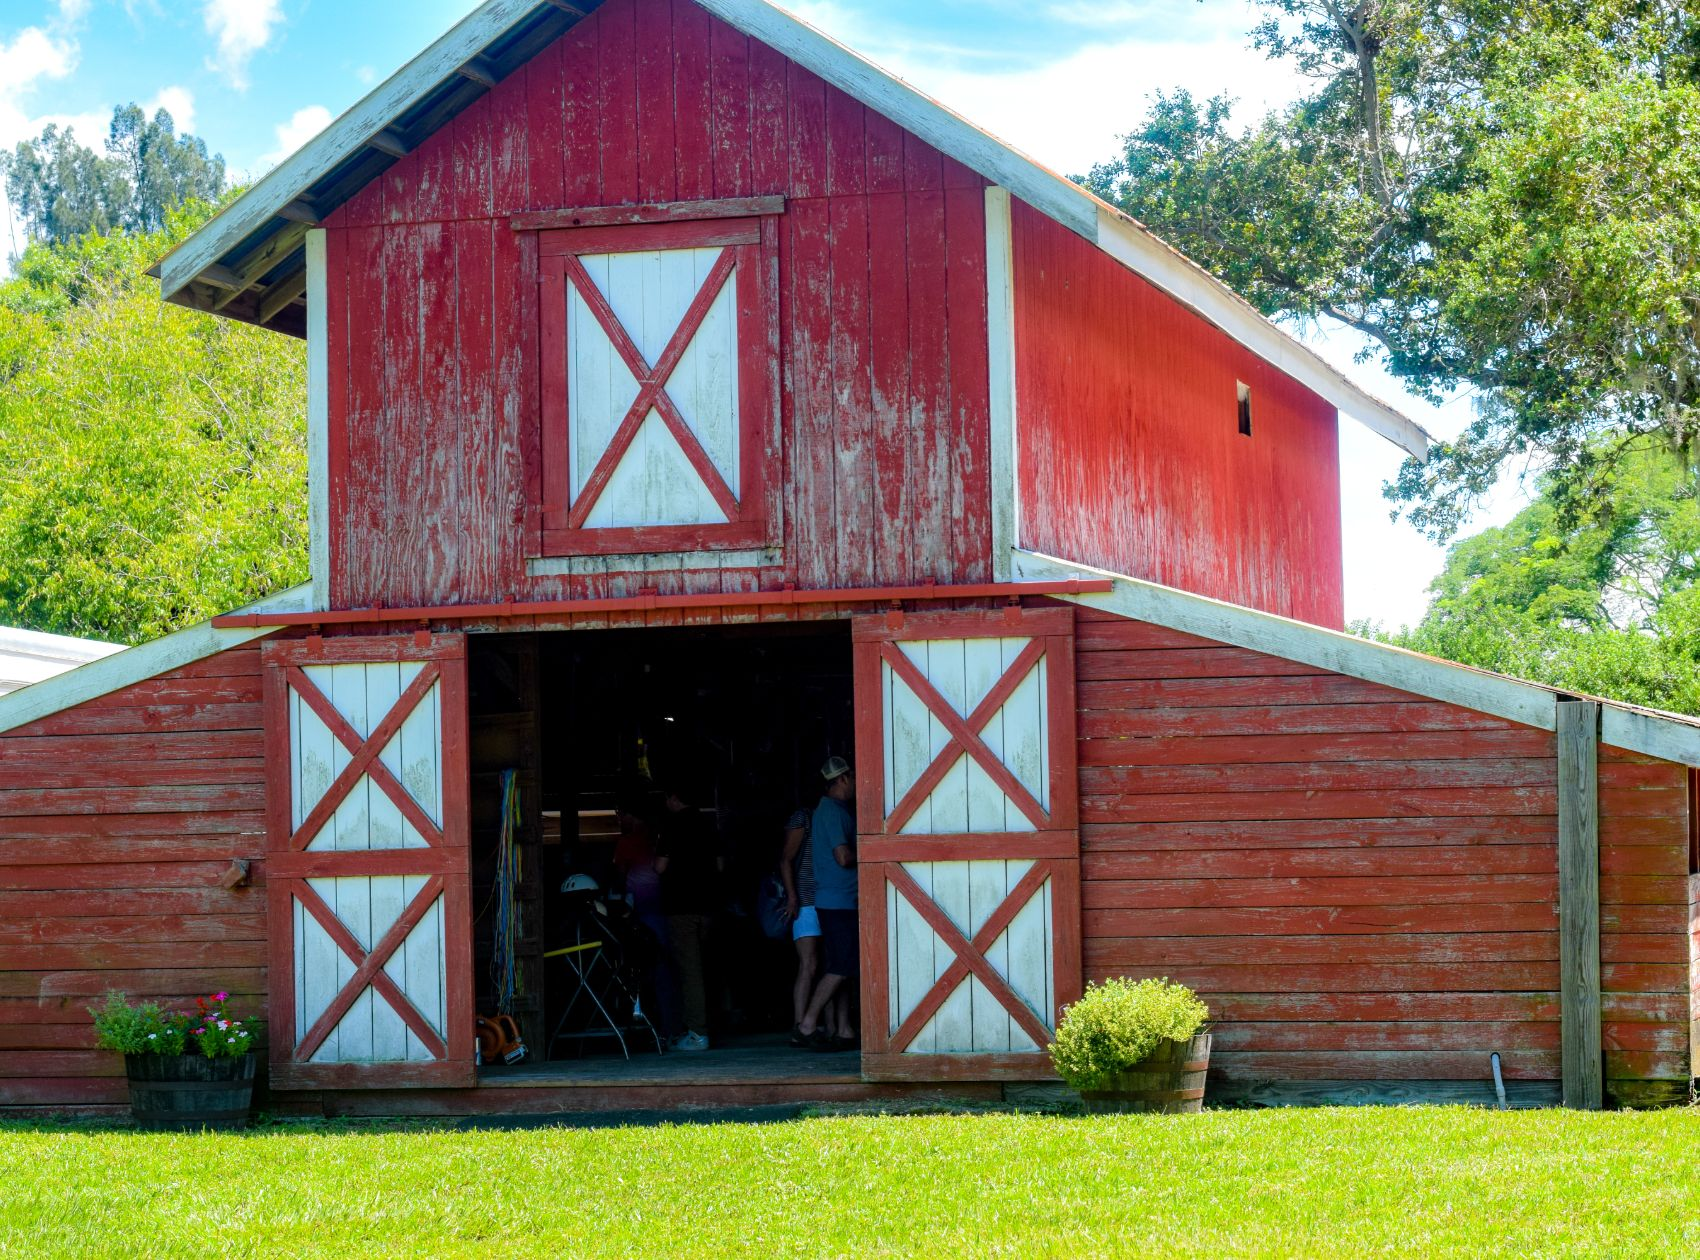 Rustic Red Barn The Farm Experience Palmetto FL